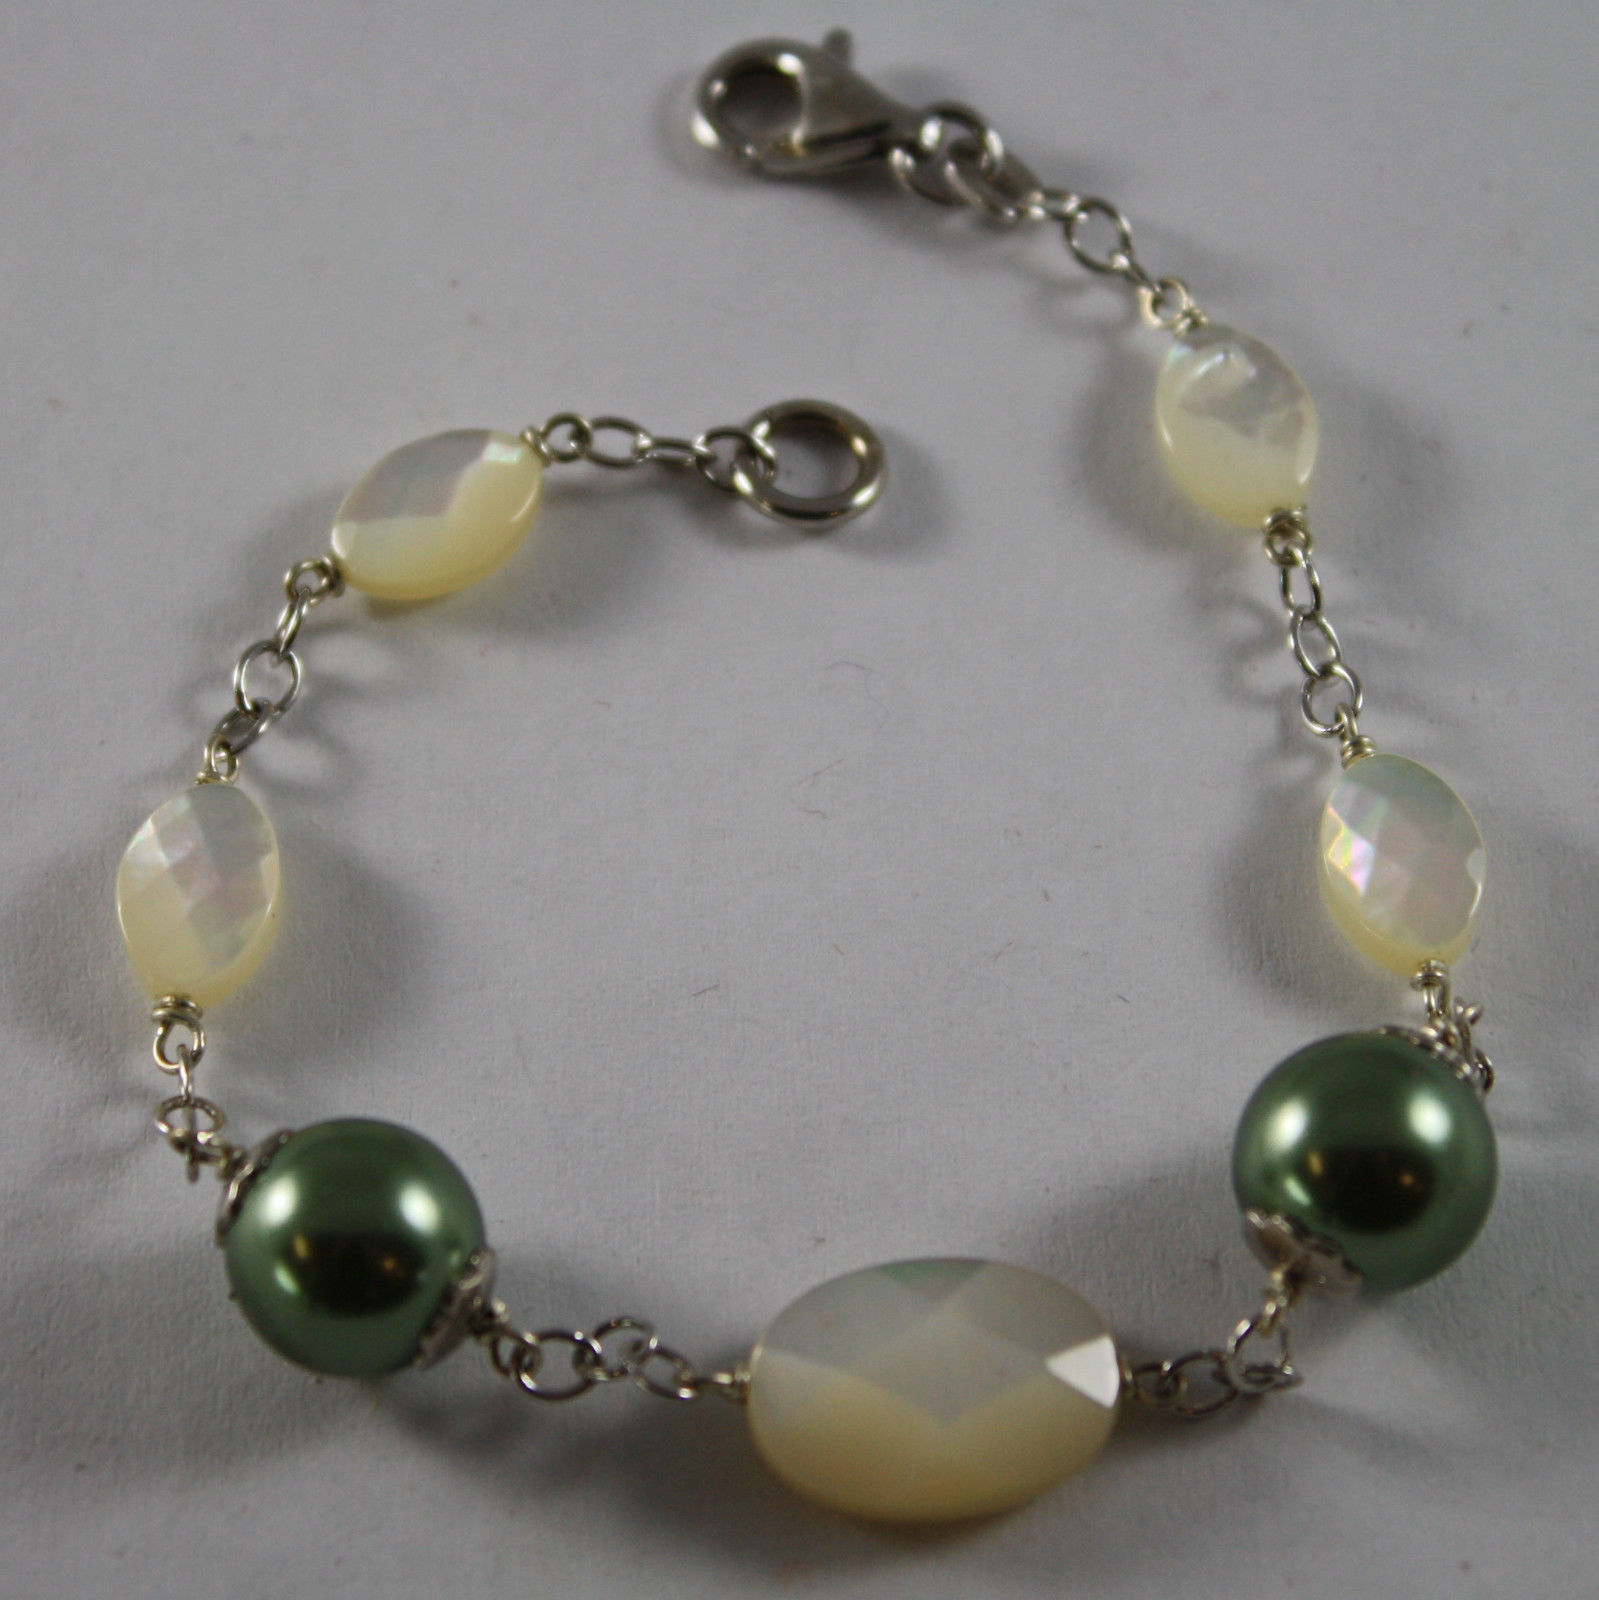 .925 RHODIUM SILVER BRACELET WITH OVAL MOTHER OF PEARL AND GREEN PEARLS REBUILT